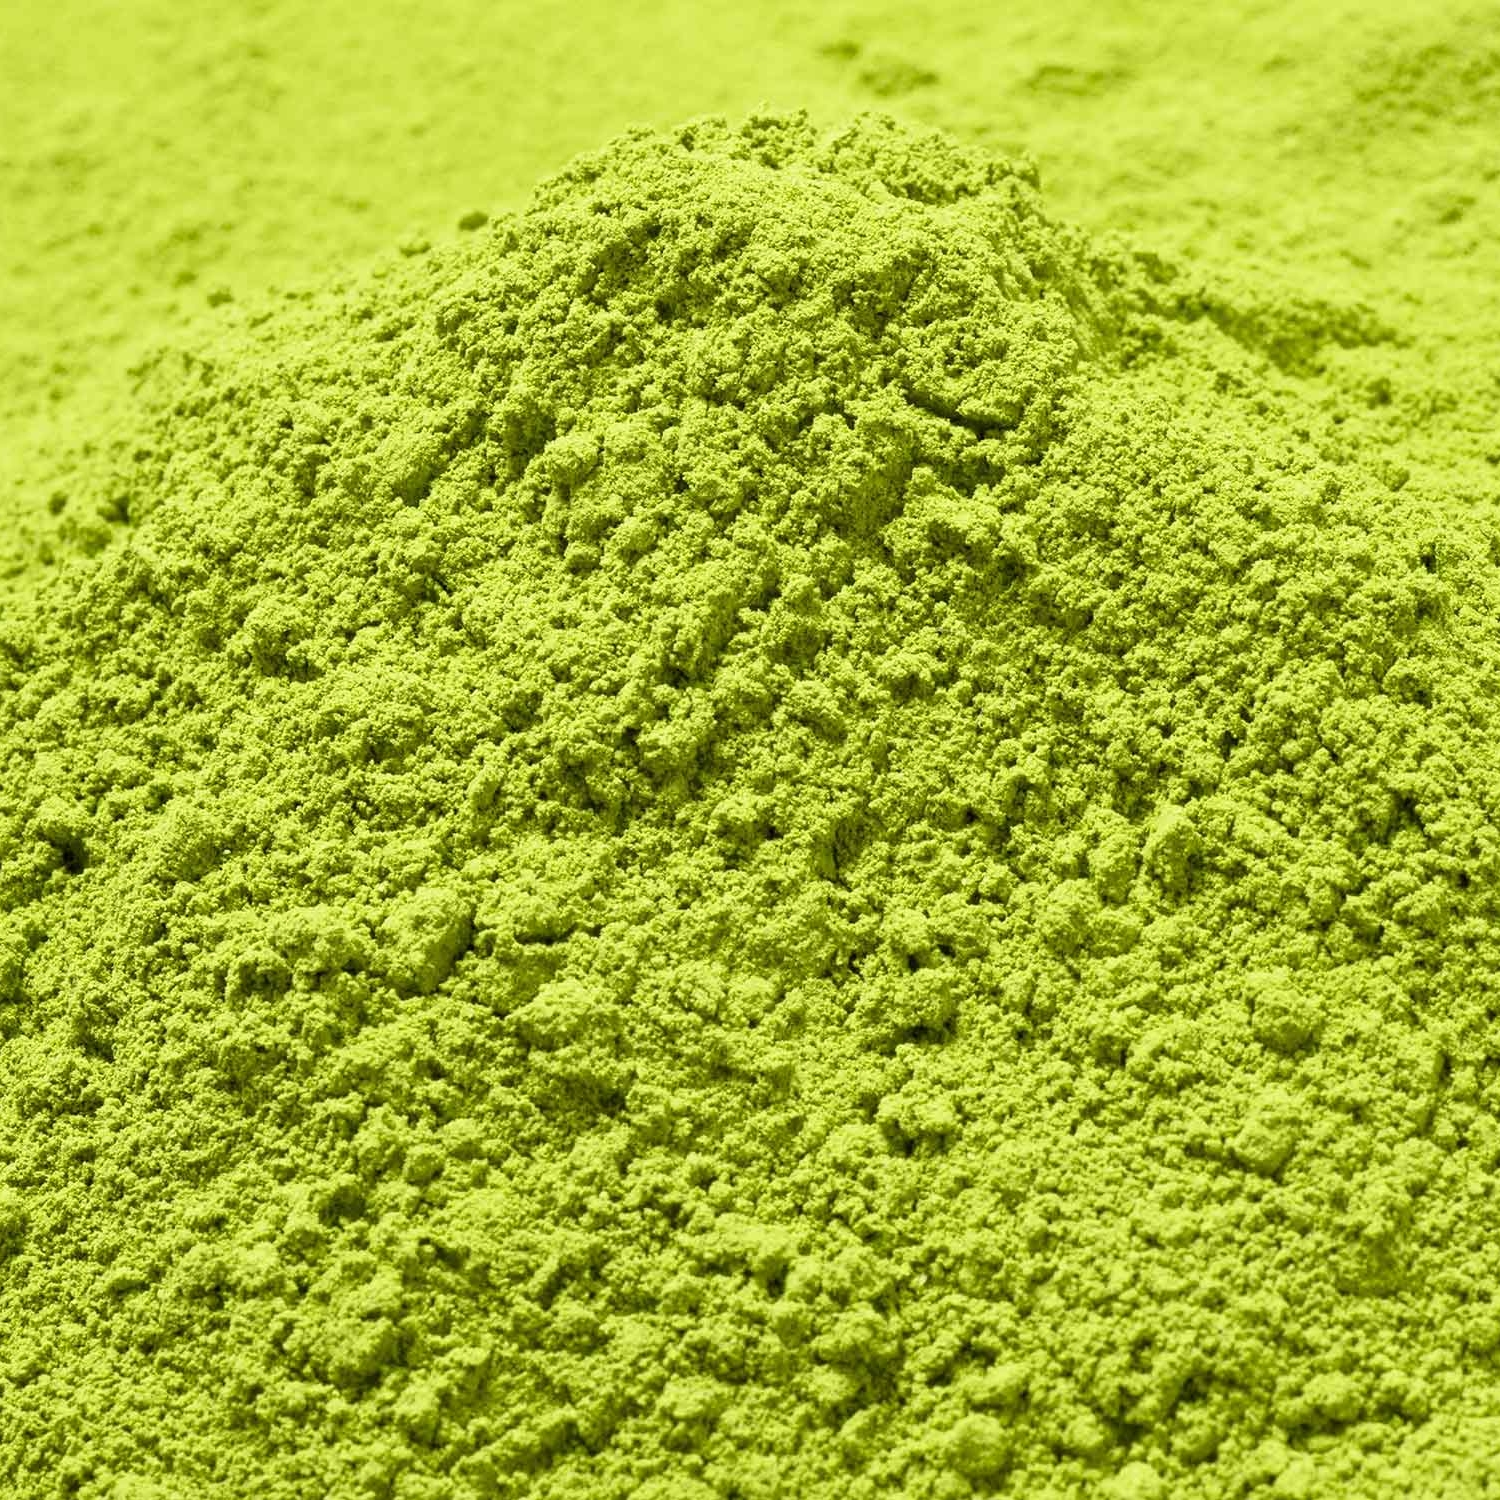 green-powder.jpg